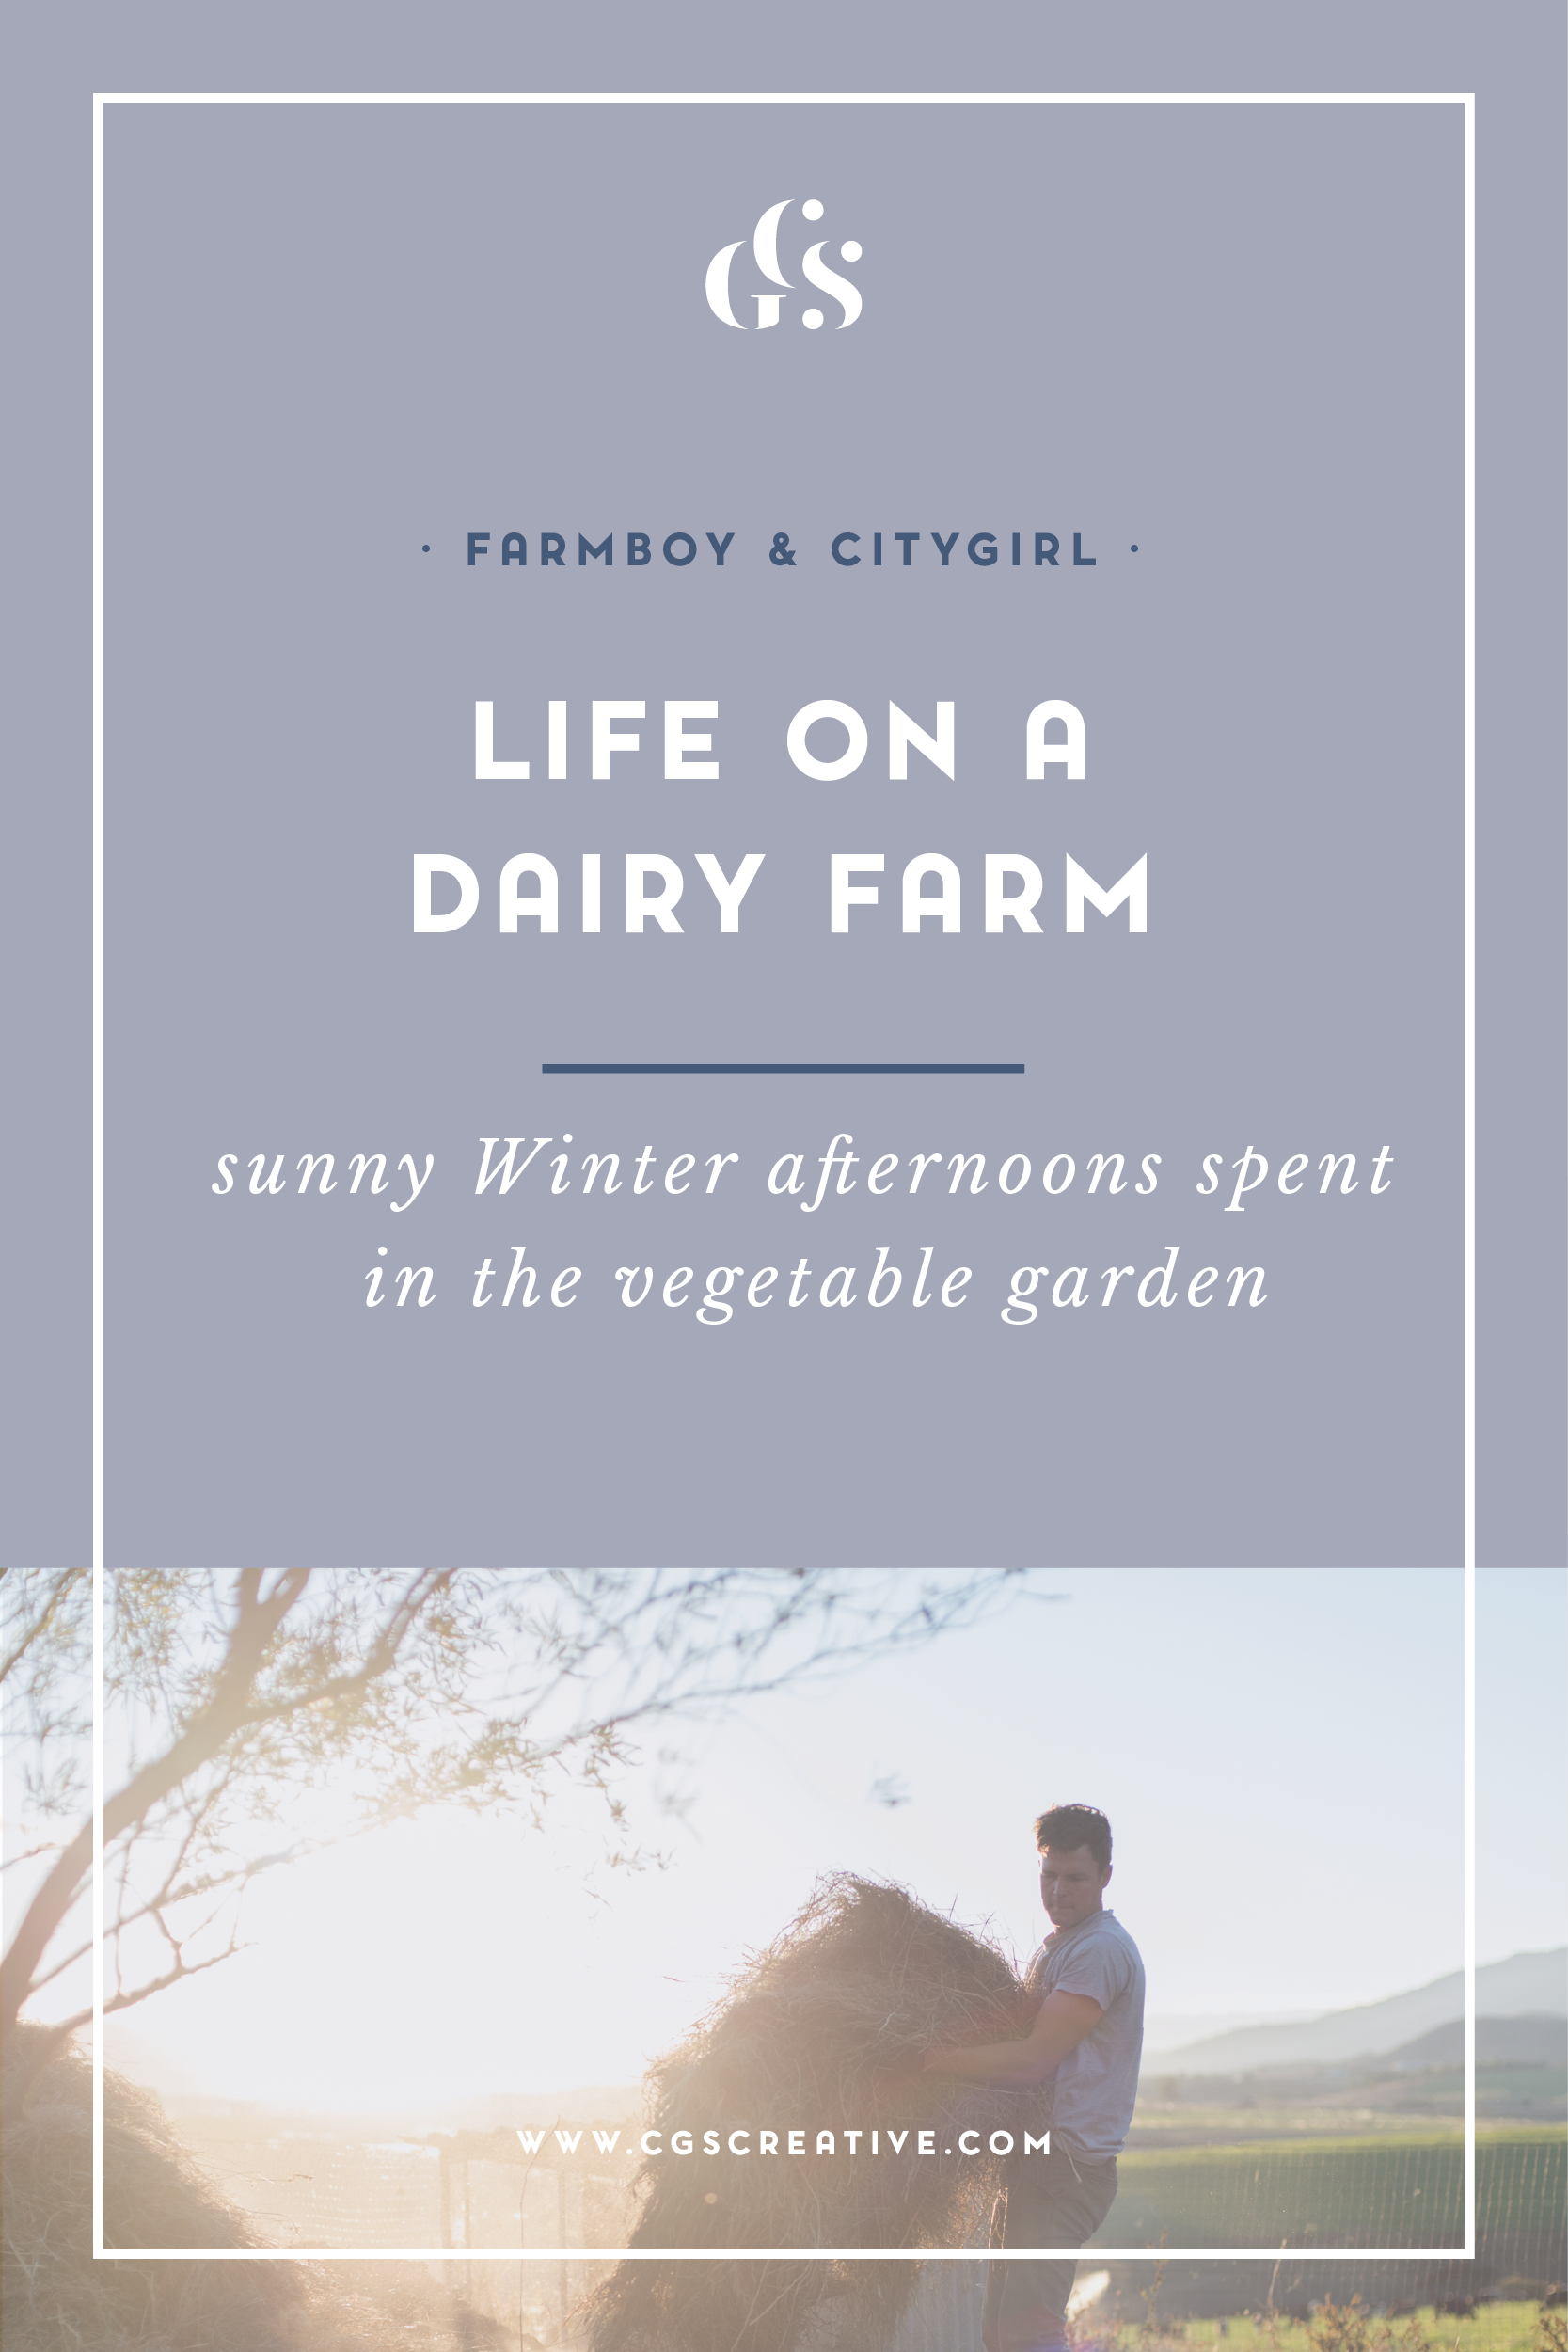 Sunny Winter afternoons in the veggie garden Farmboy & CityGirl South Africa-01.png